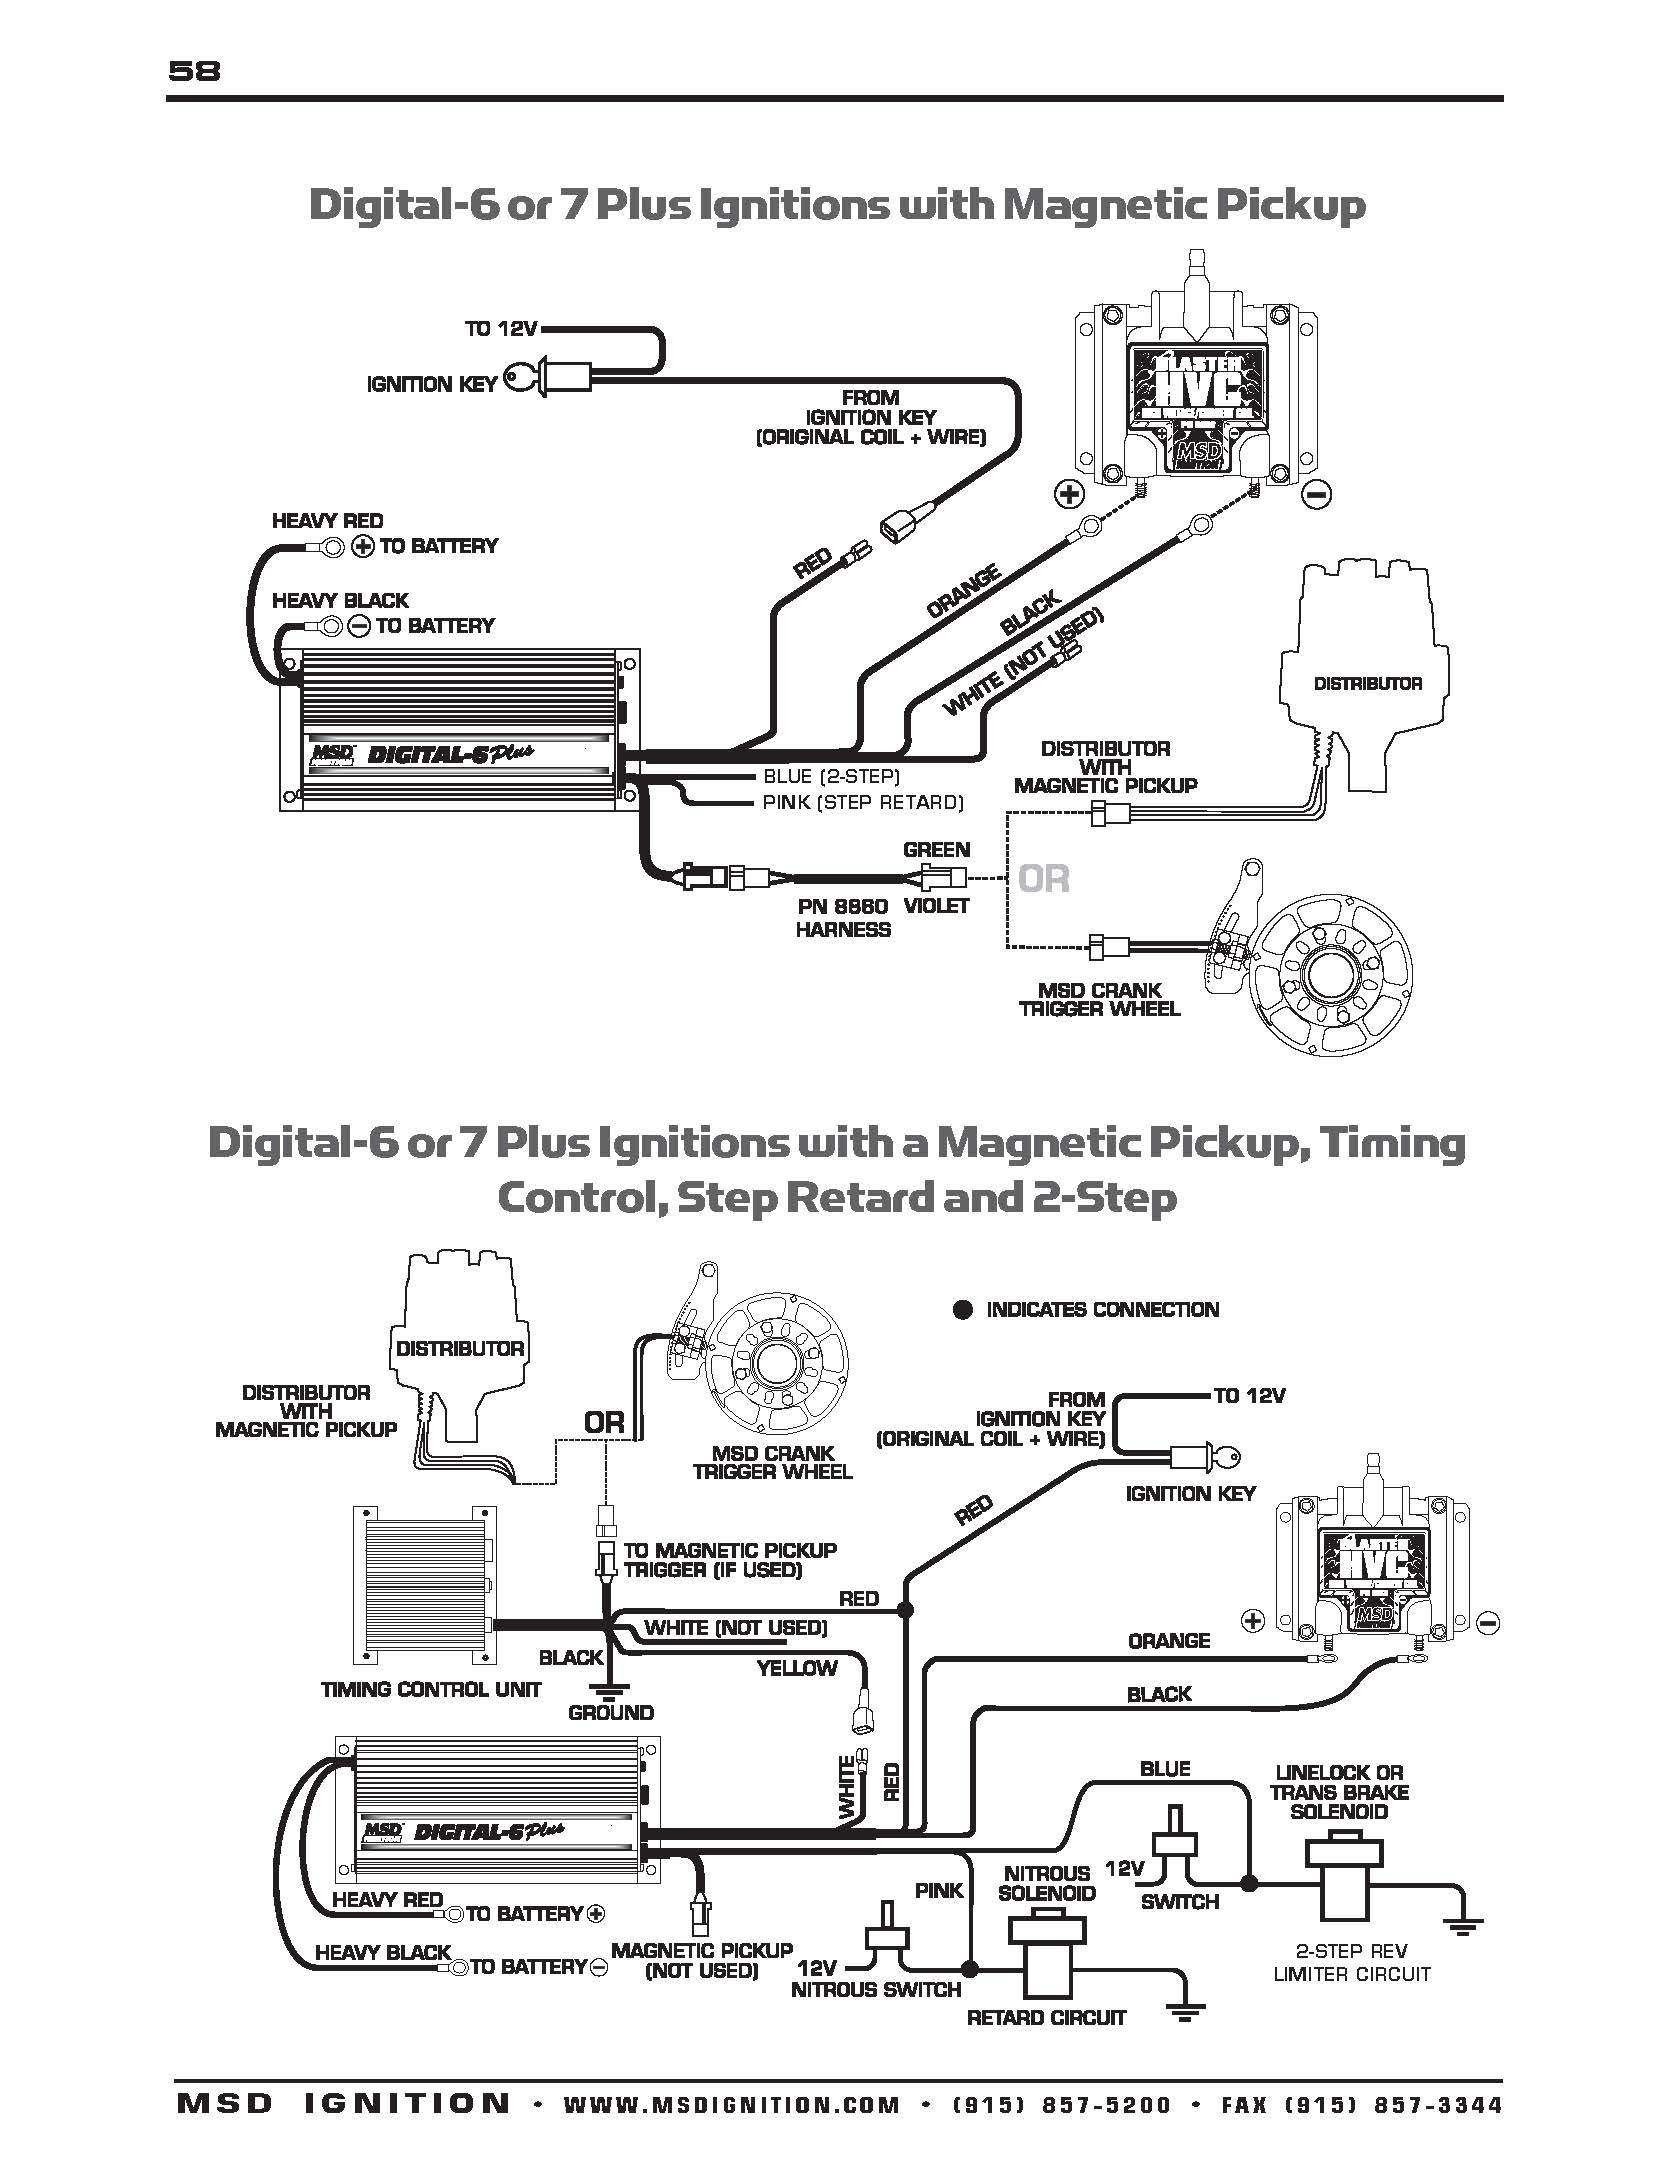 Wiring Diagram For Msd 2 Step | Wiring Library - Msd Digital 6 Plus Wiring Diagram